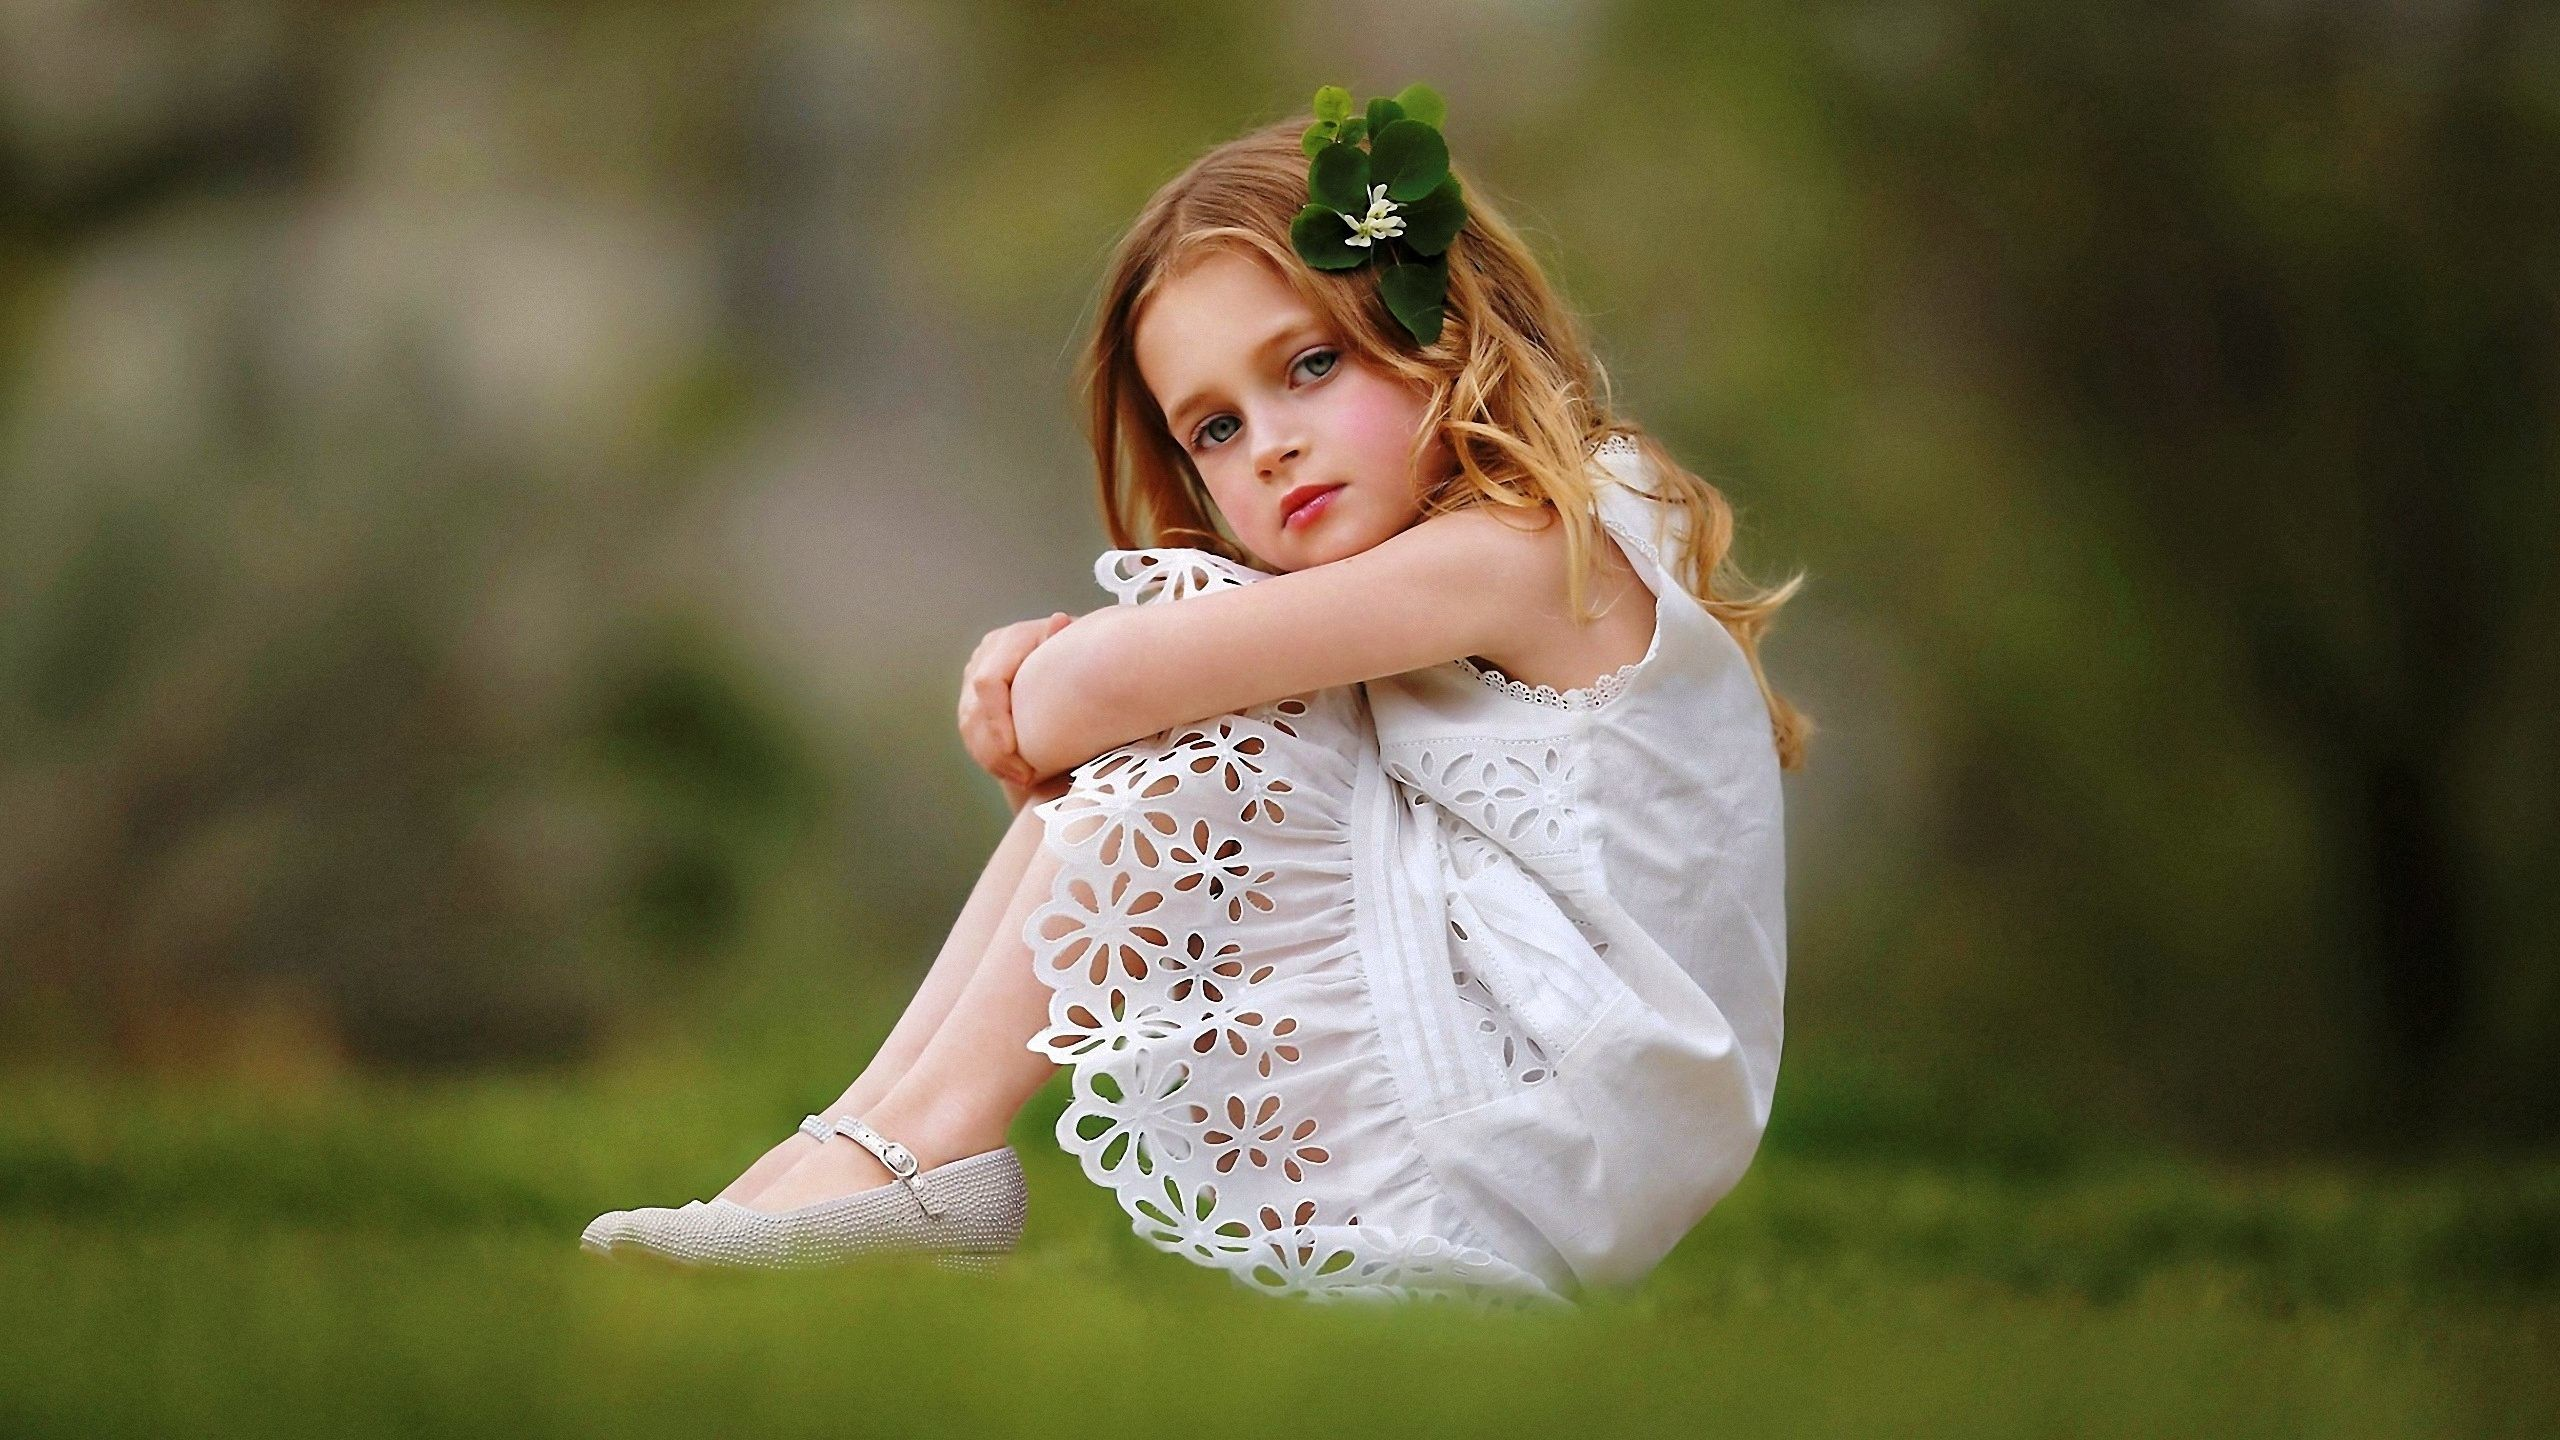 Cute Baby Girls Wallpapers HD Pictures One HD Wallpaper Pictures 1366×768  Cute Girl Wallpapers